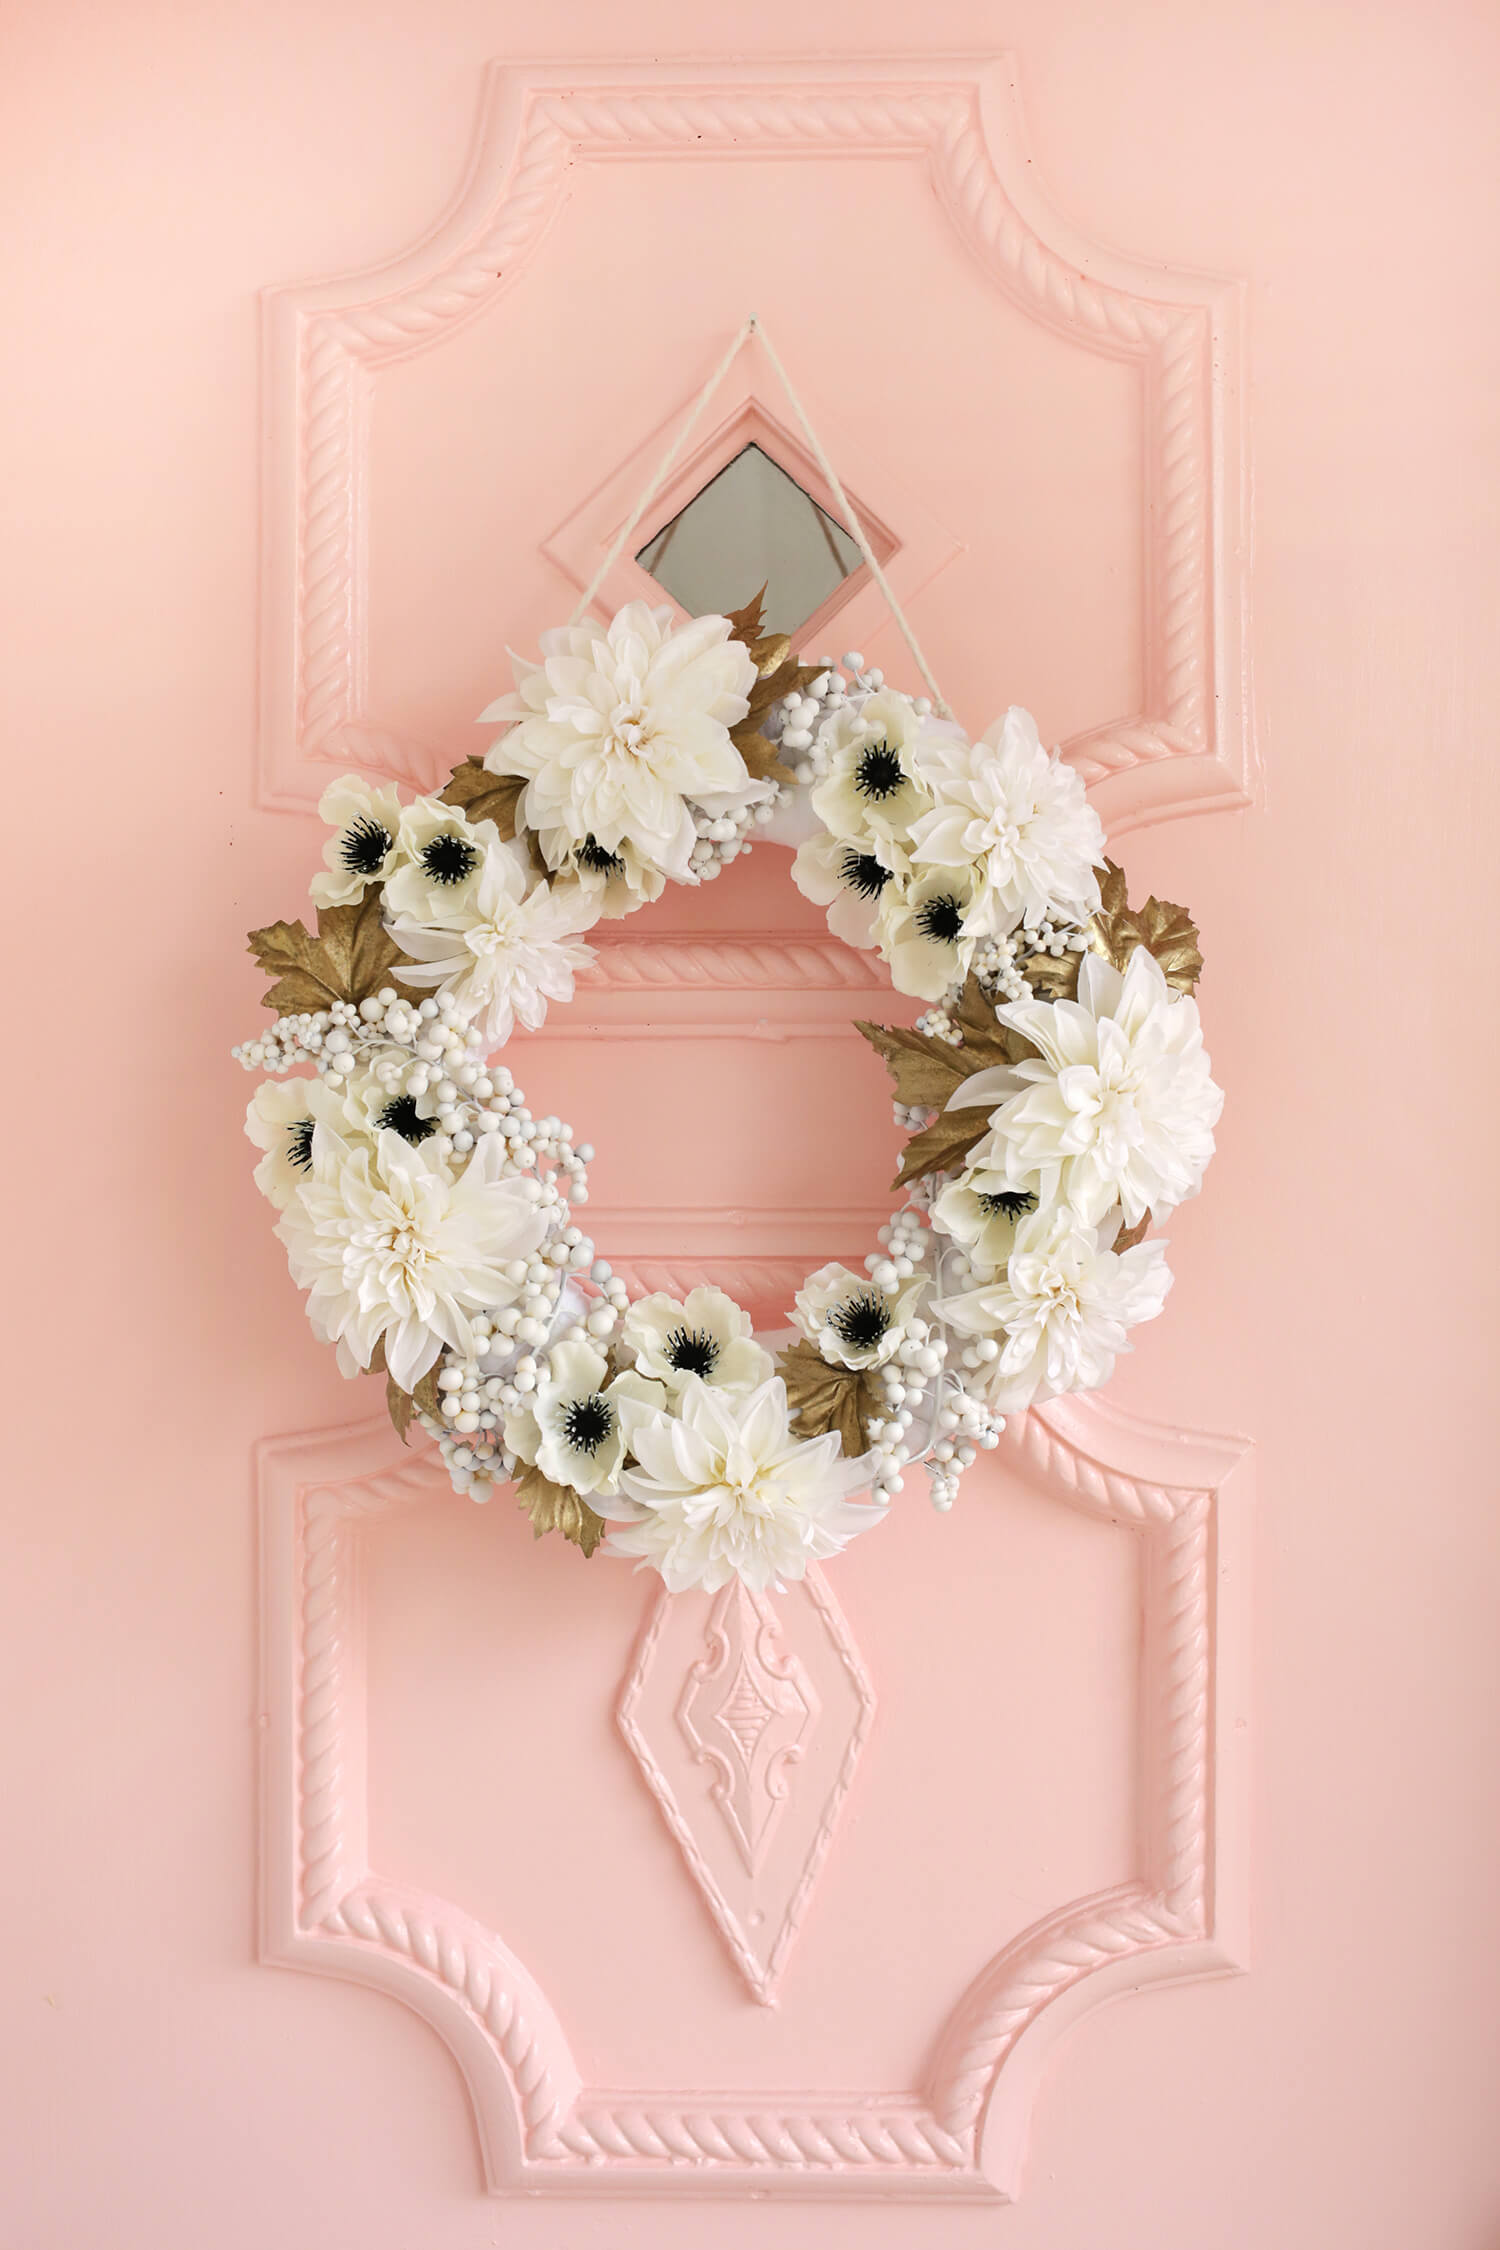 Diy gold and white holiday wreath